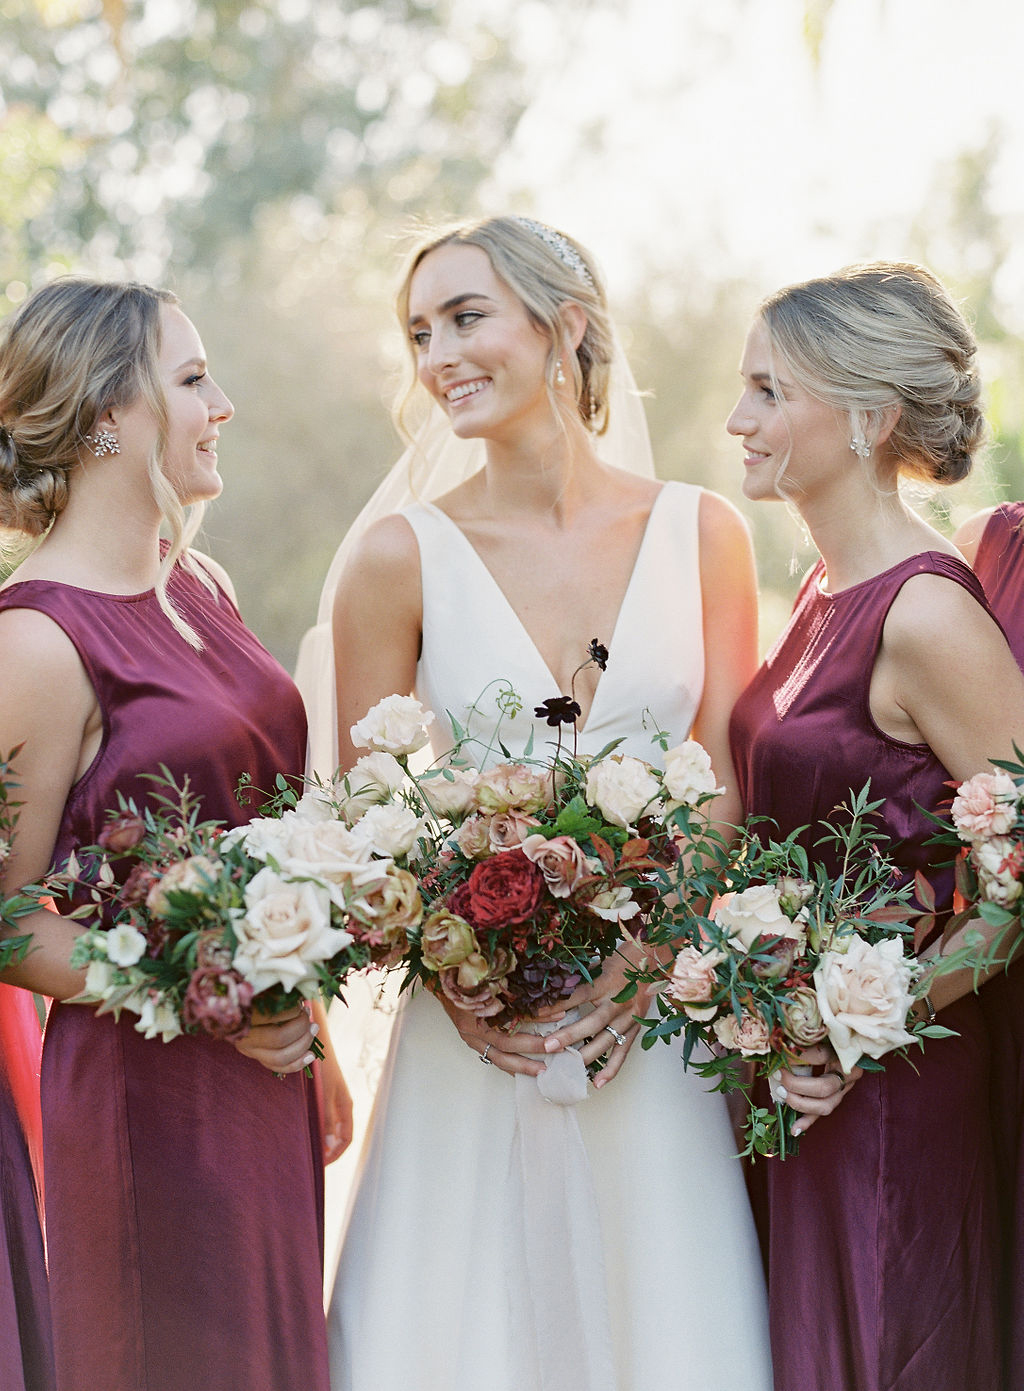 bride with bridesmaids in maroon dresses